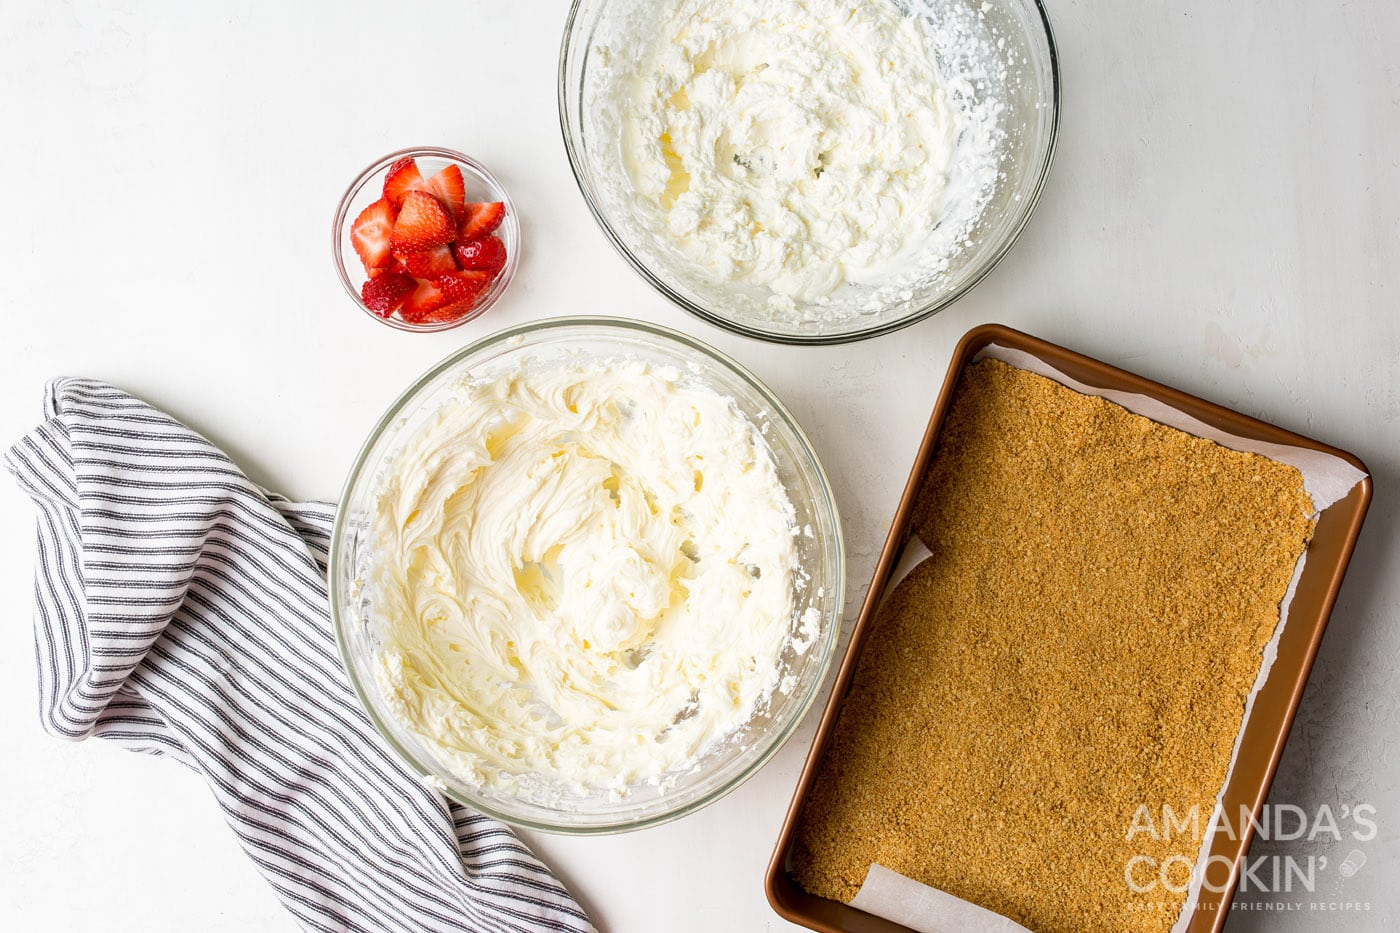 whipped cream and cheesecake mixture in bowls